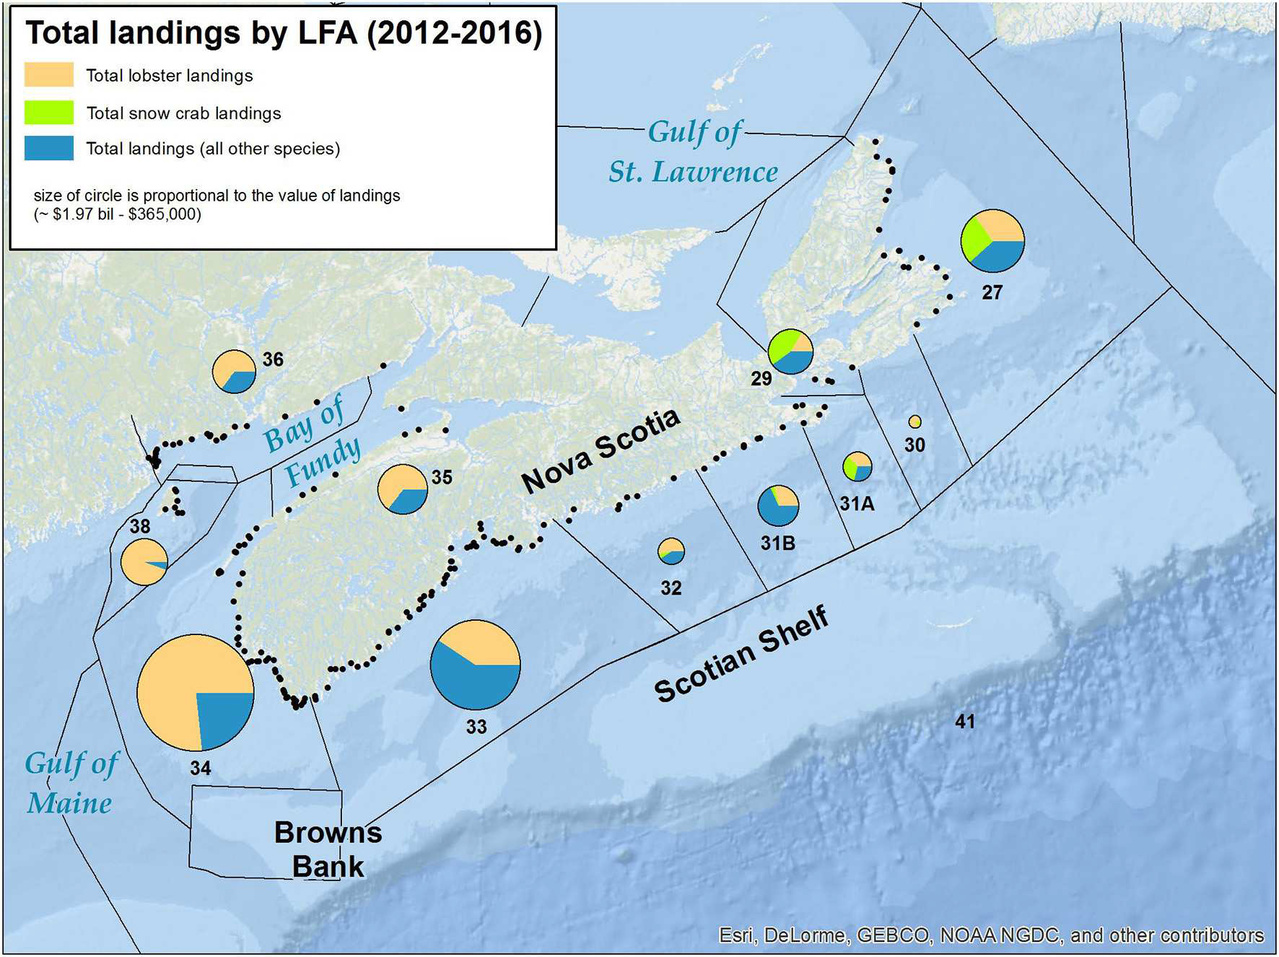 Map showing total landings by lobster fishing area in Nova Scotia between 2012 and 2016.